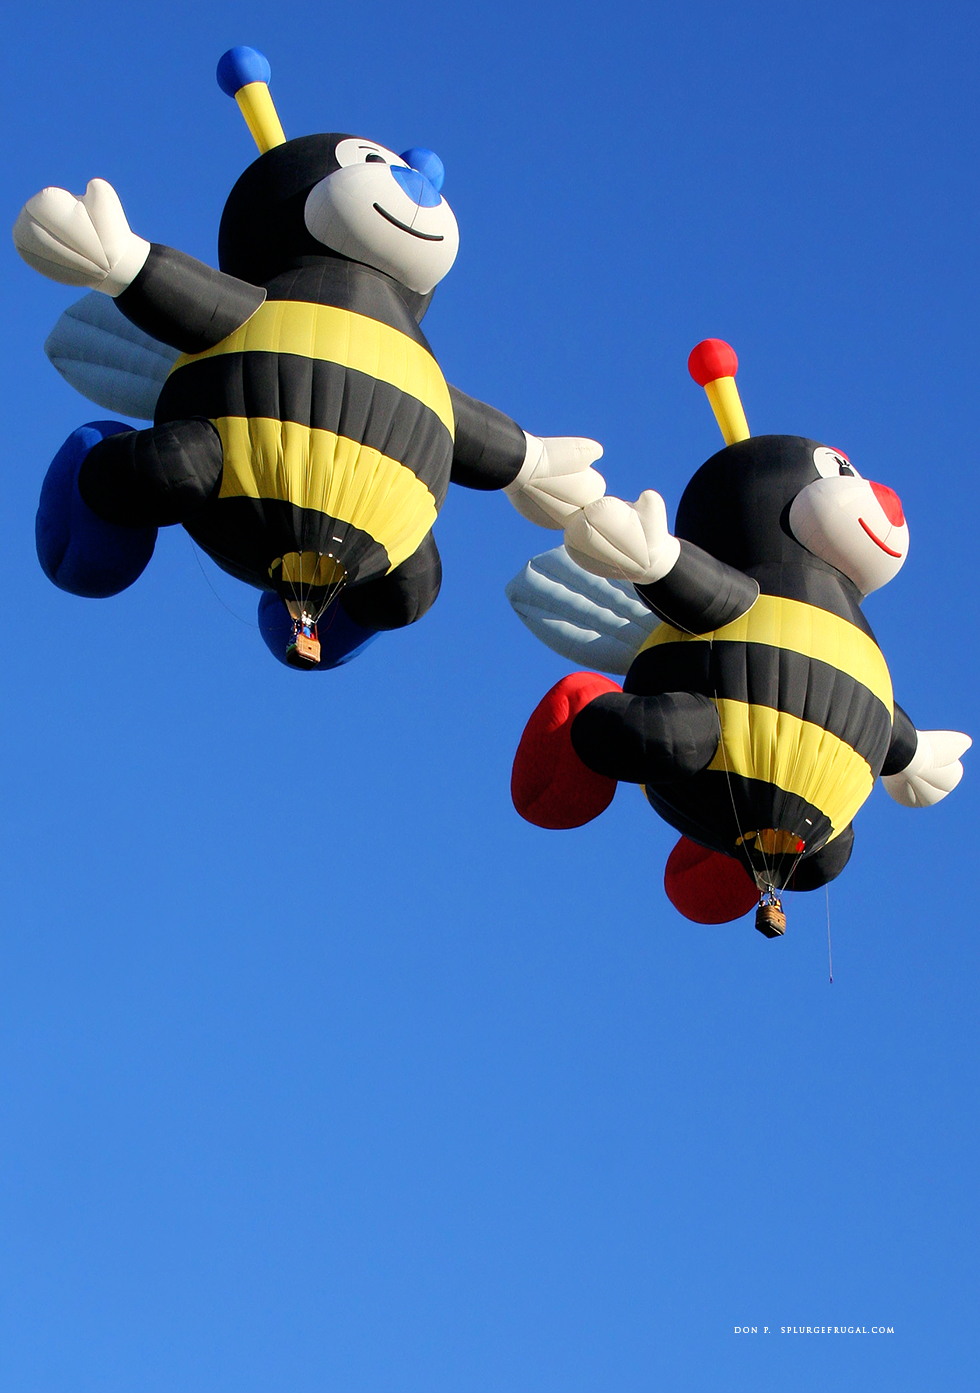 2020 Albuquerque International Balloon Fiesta